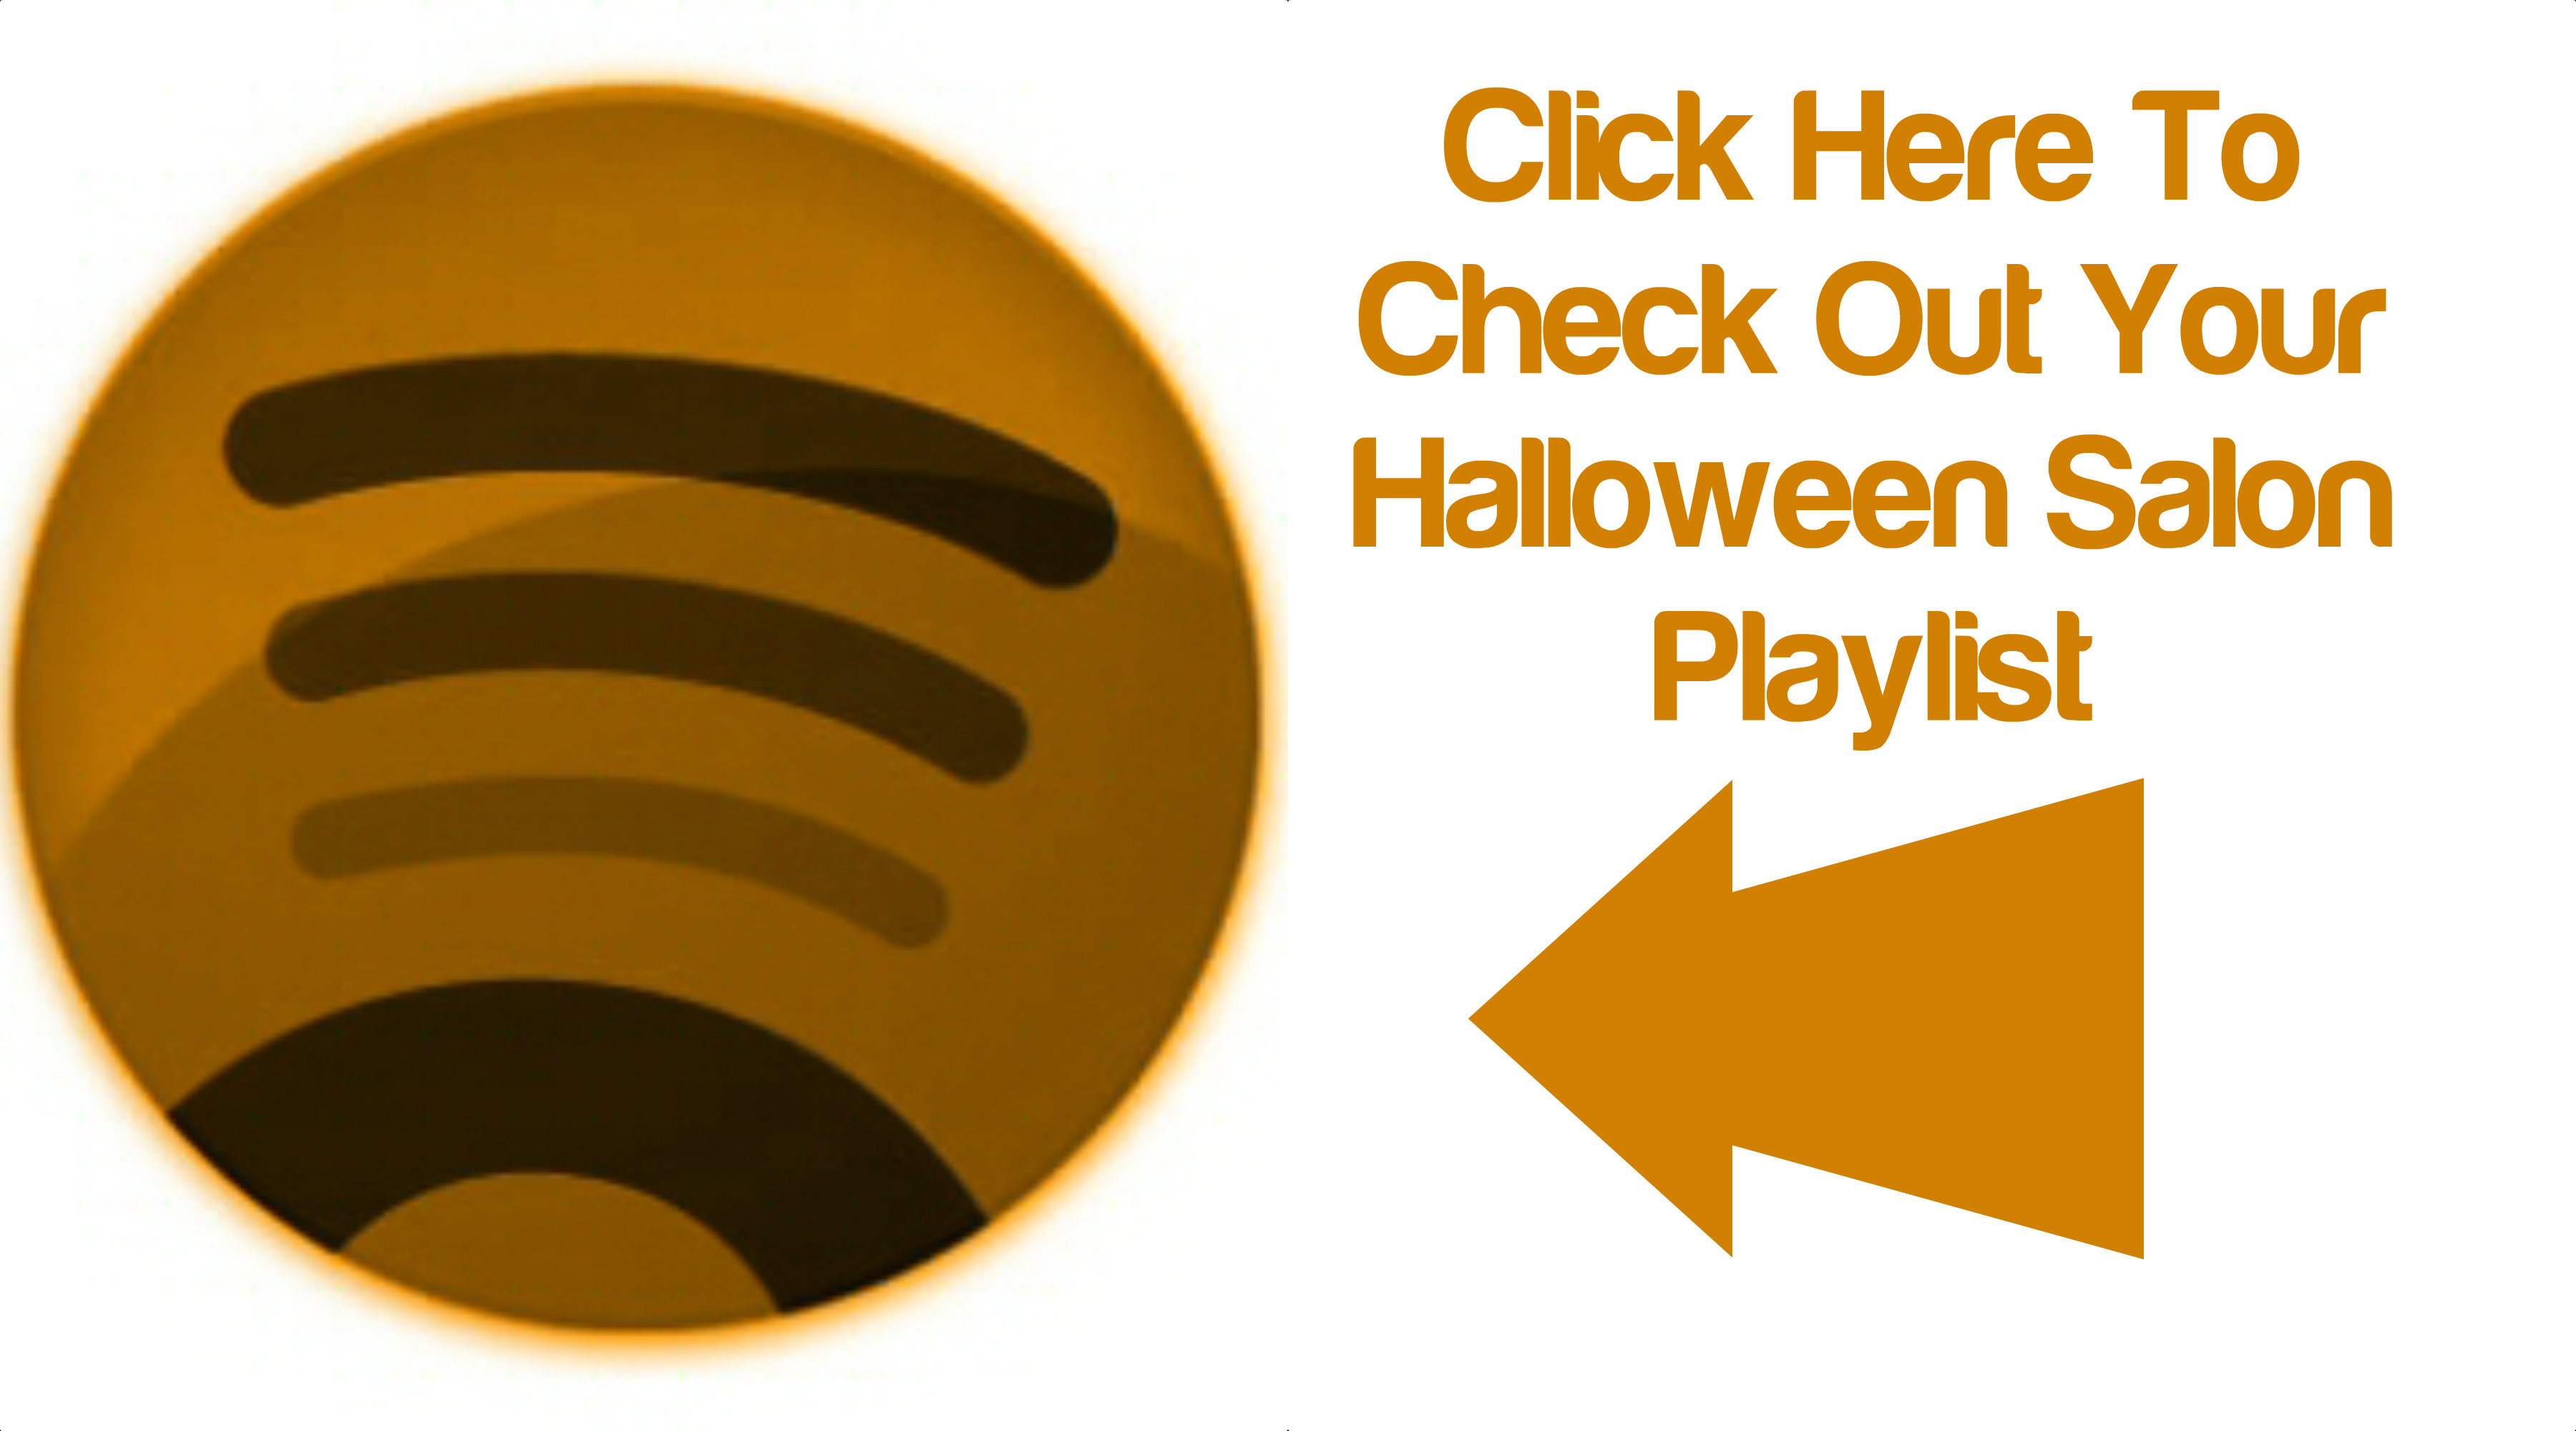 Halloween-Salon-Playlist